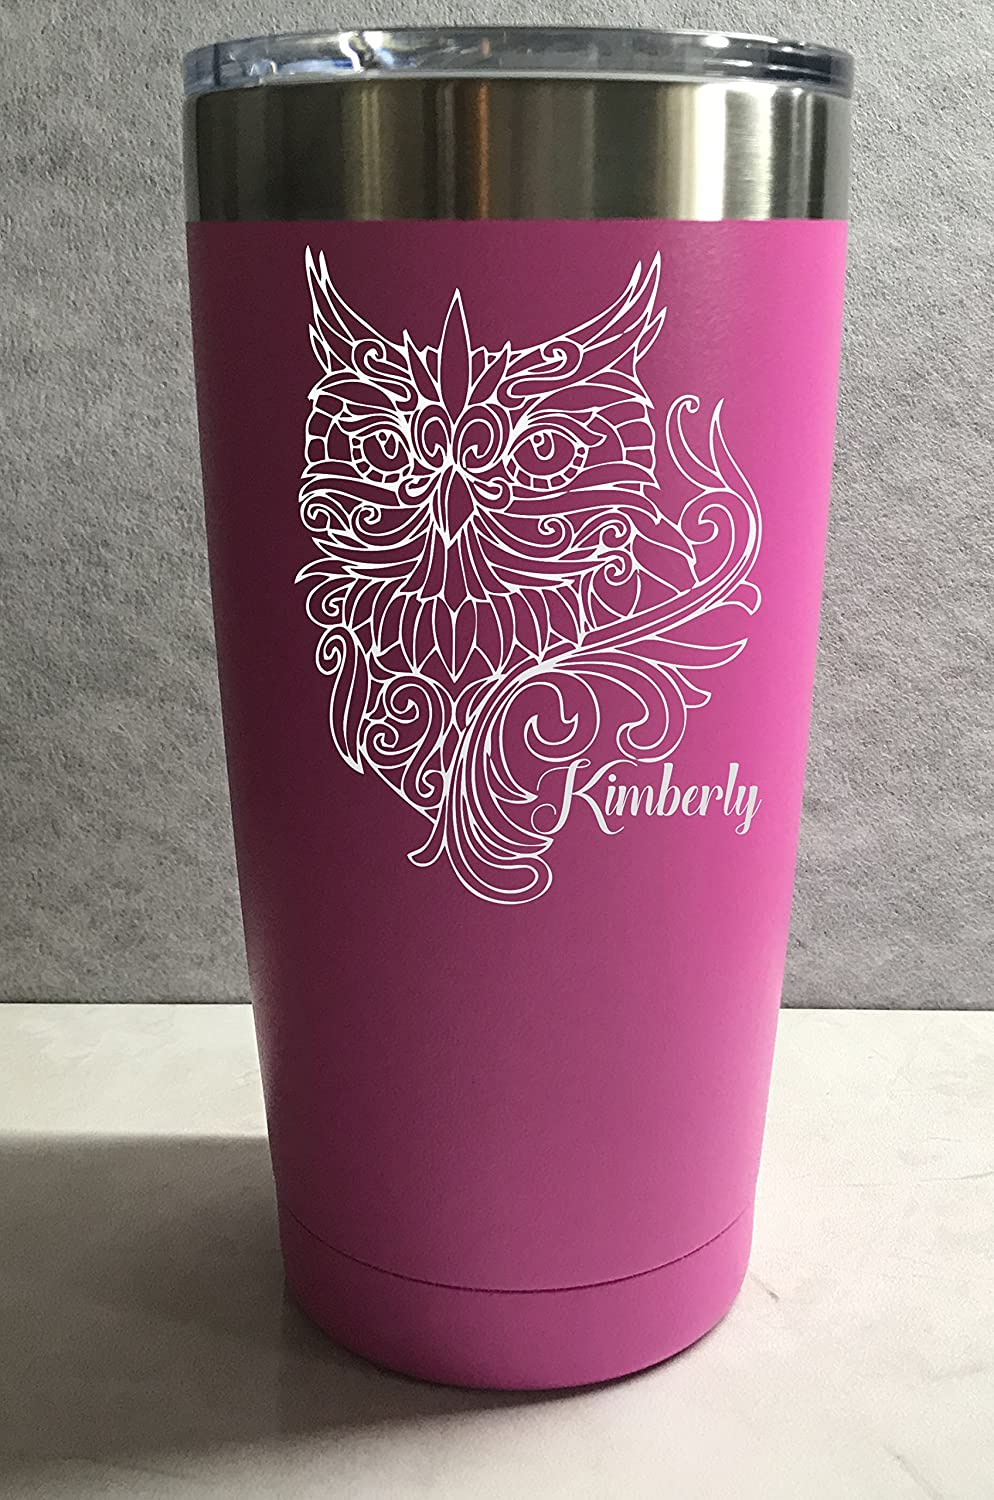 Majestic Owl Personalized Engraved Insulated Stainless Steel 20 oz Tumbler